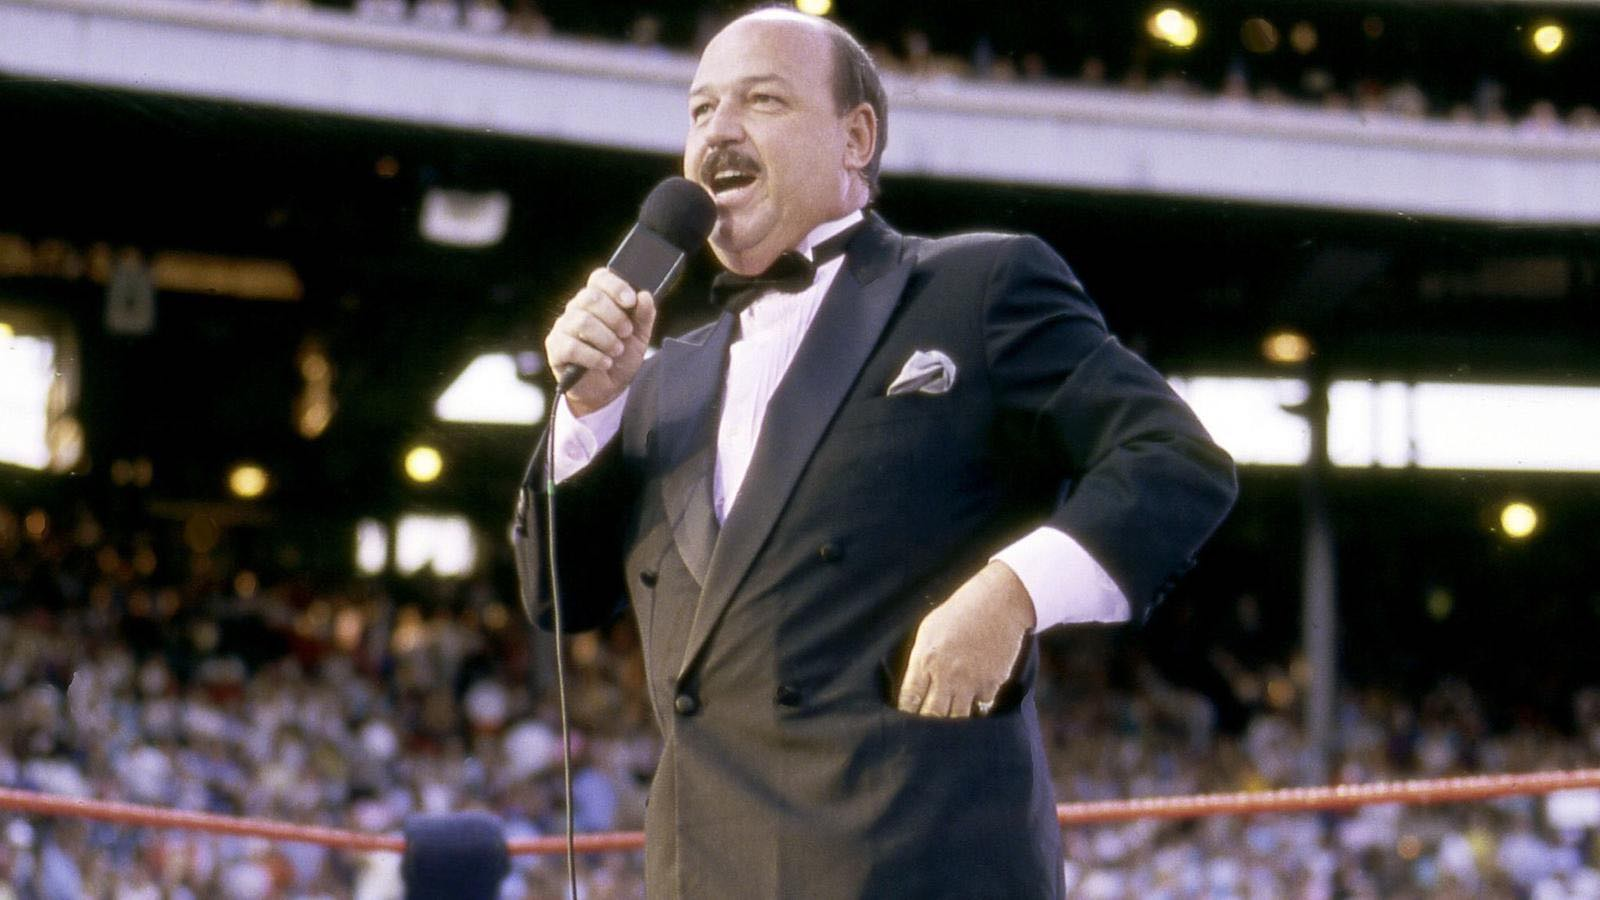 Details on the Passing of WWE Icon 'Mean' Gene Okerlund